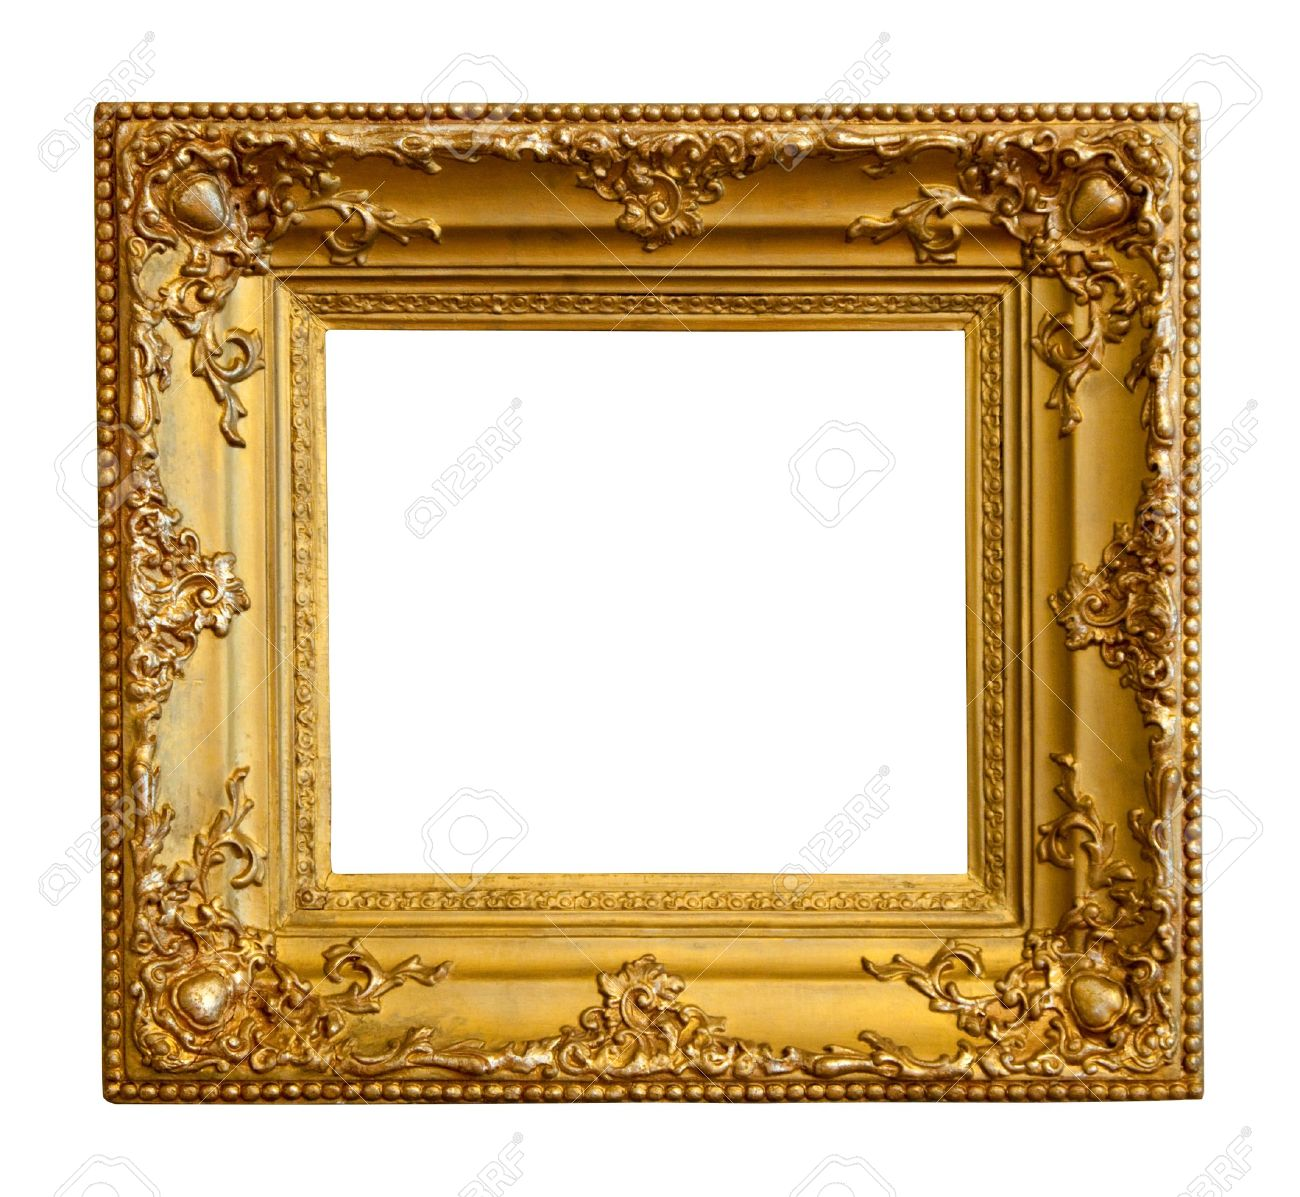 luxury gilded frame isolated over white background with clipping path stock photo 9359920